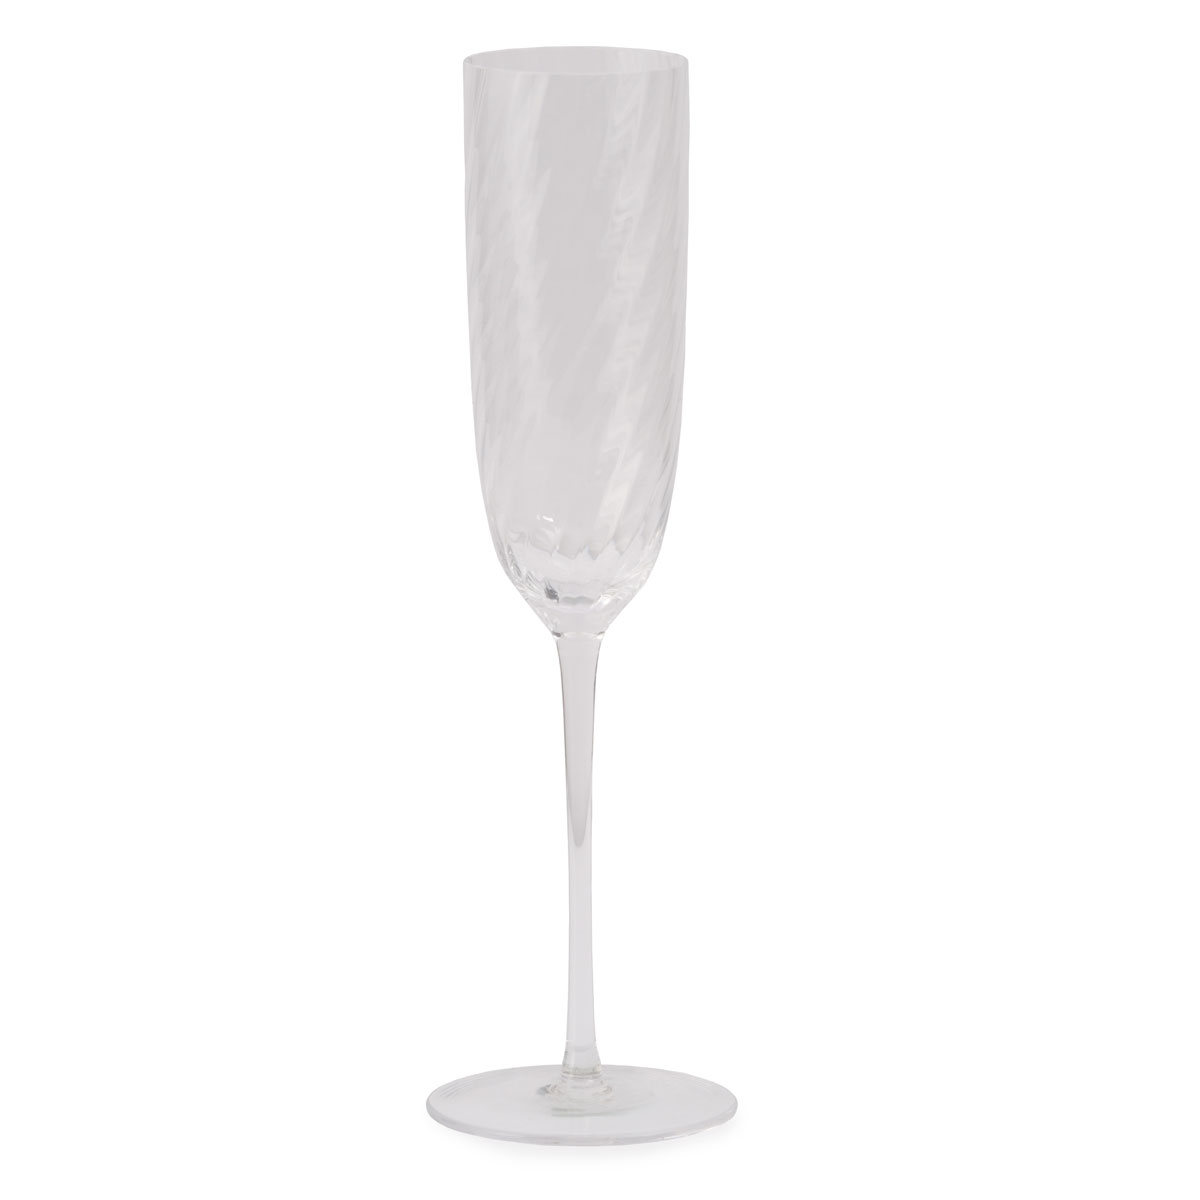 Michael Aram Twist Diamond Champagne Flute, Single